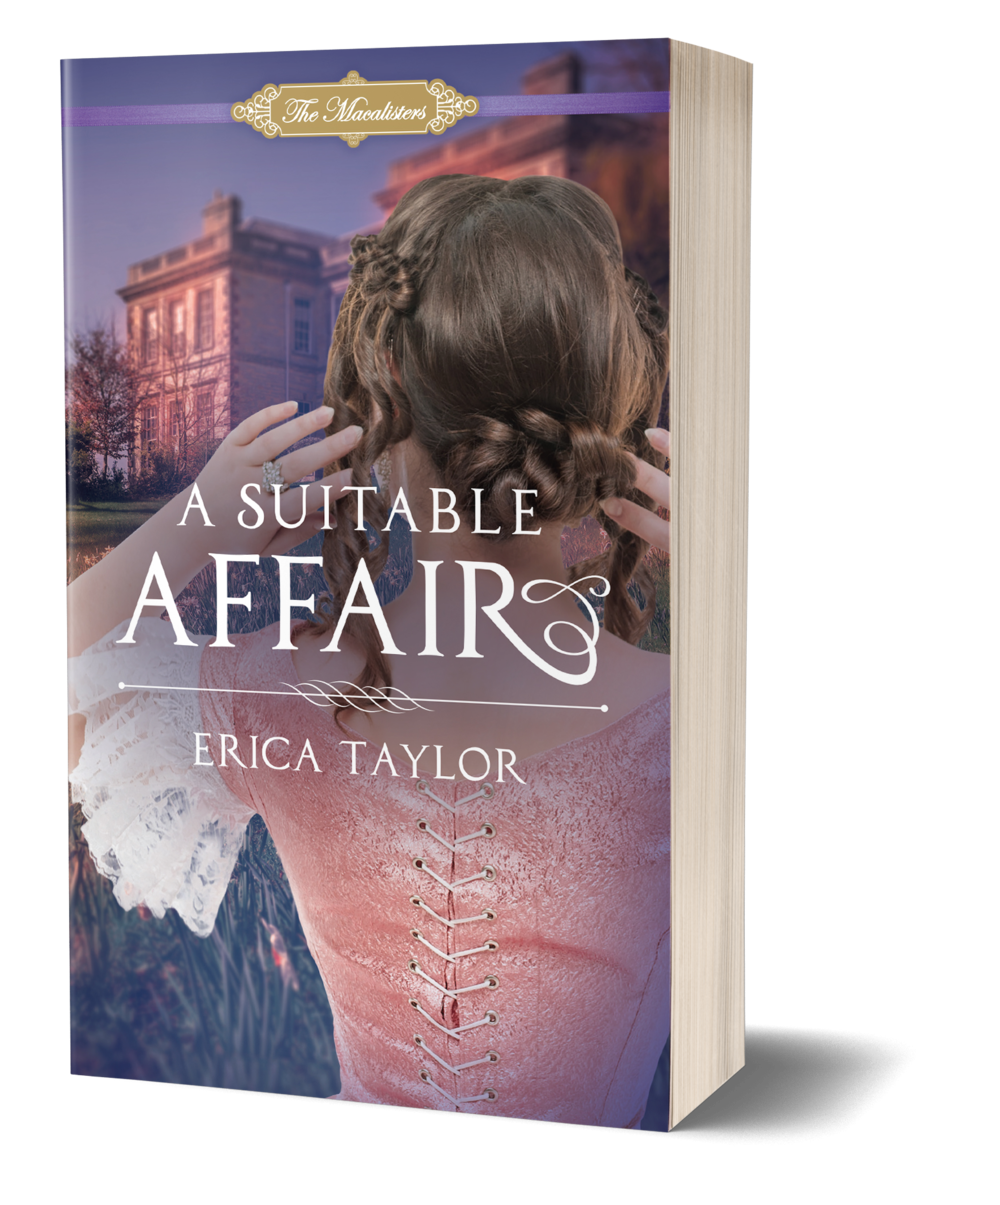 A Suitable Affair book cover, woman with her hands in her braided hair, looking at large, fancy house in background